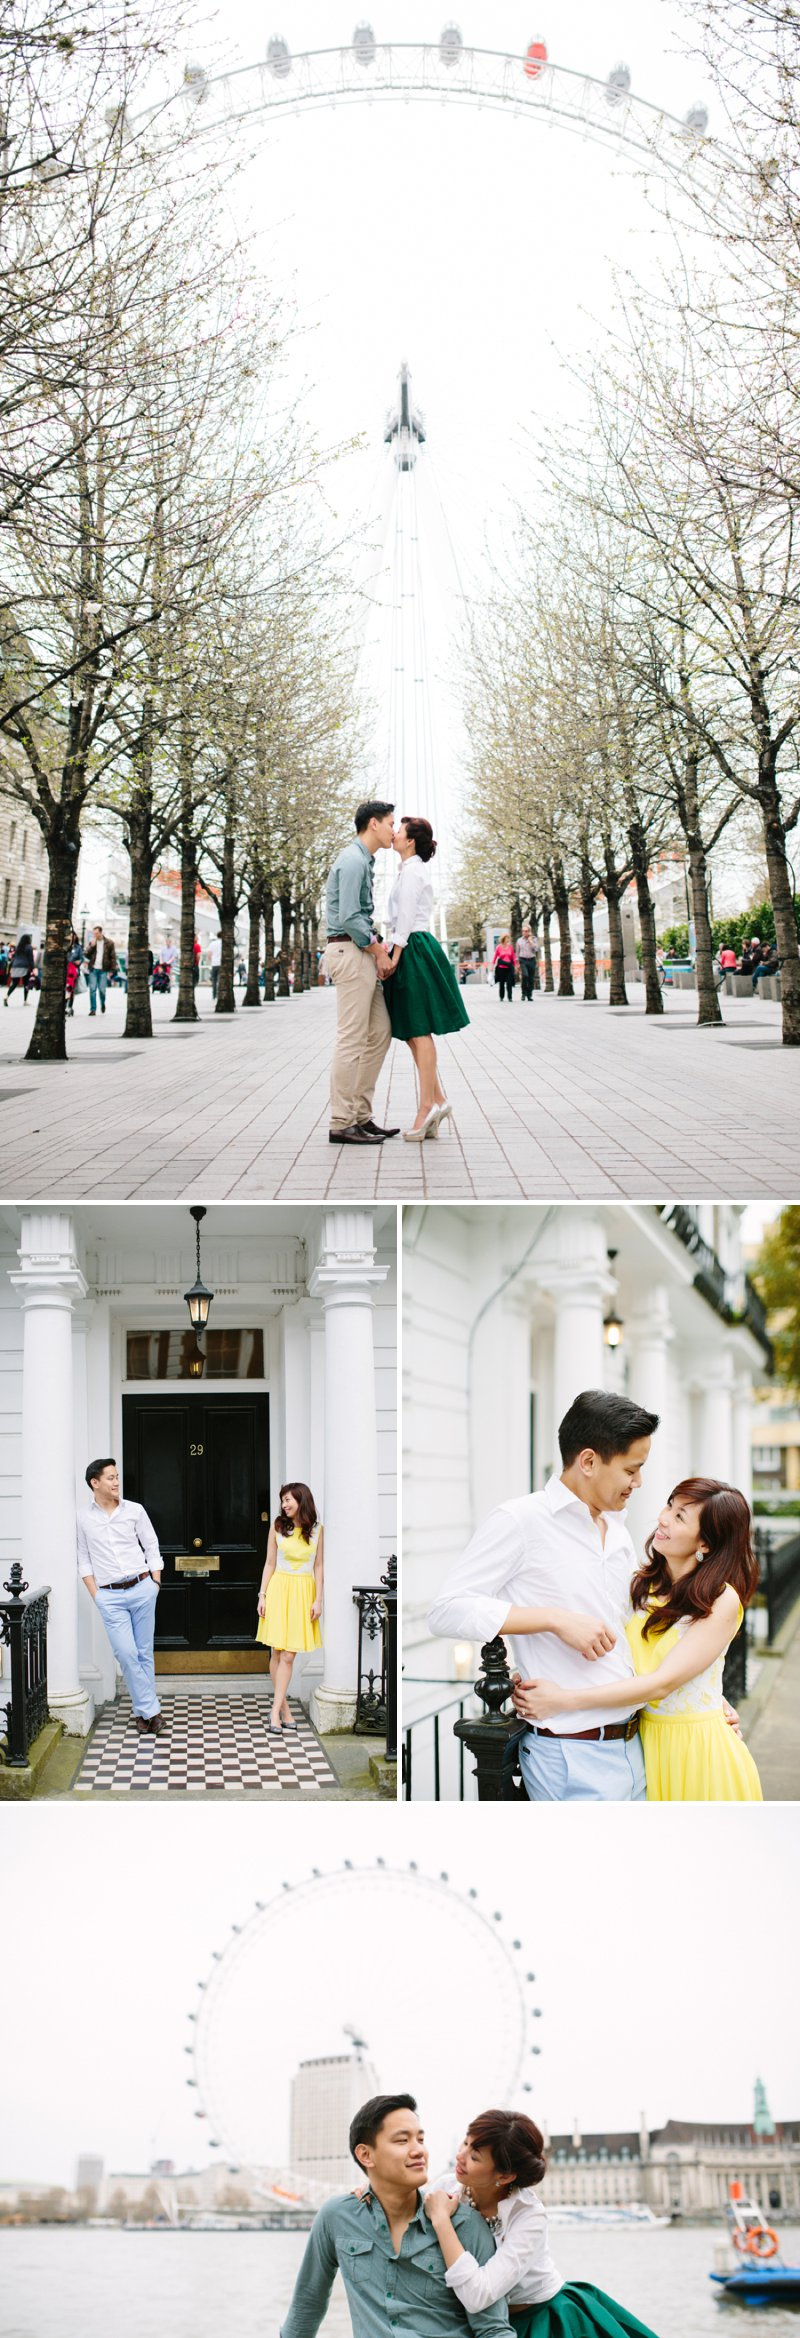 London Engagement Shoot Featuring The Houses Of Parliament, The London Eye And Peggy Porschen Cakes 1